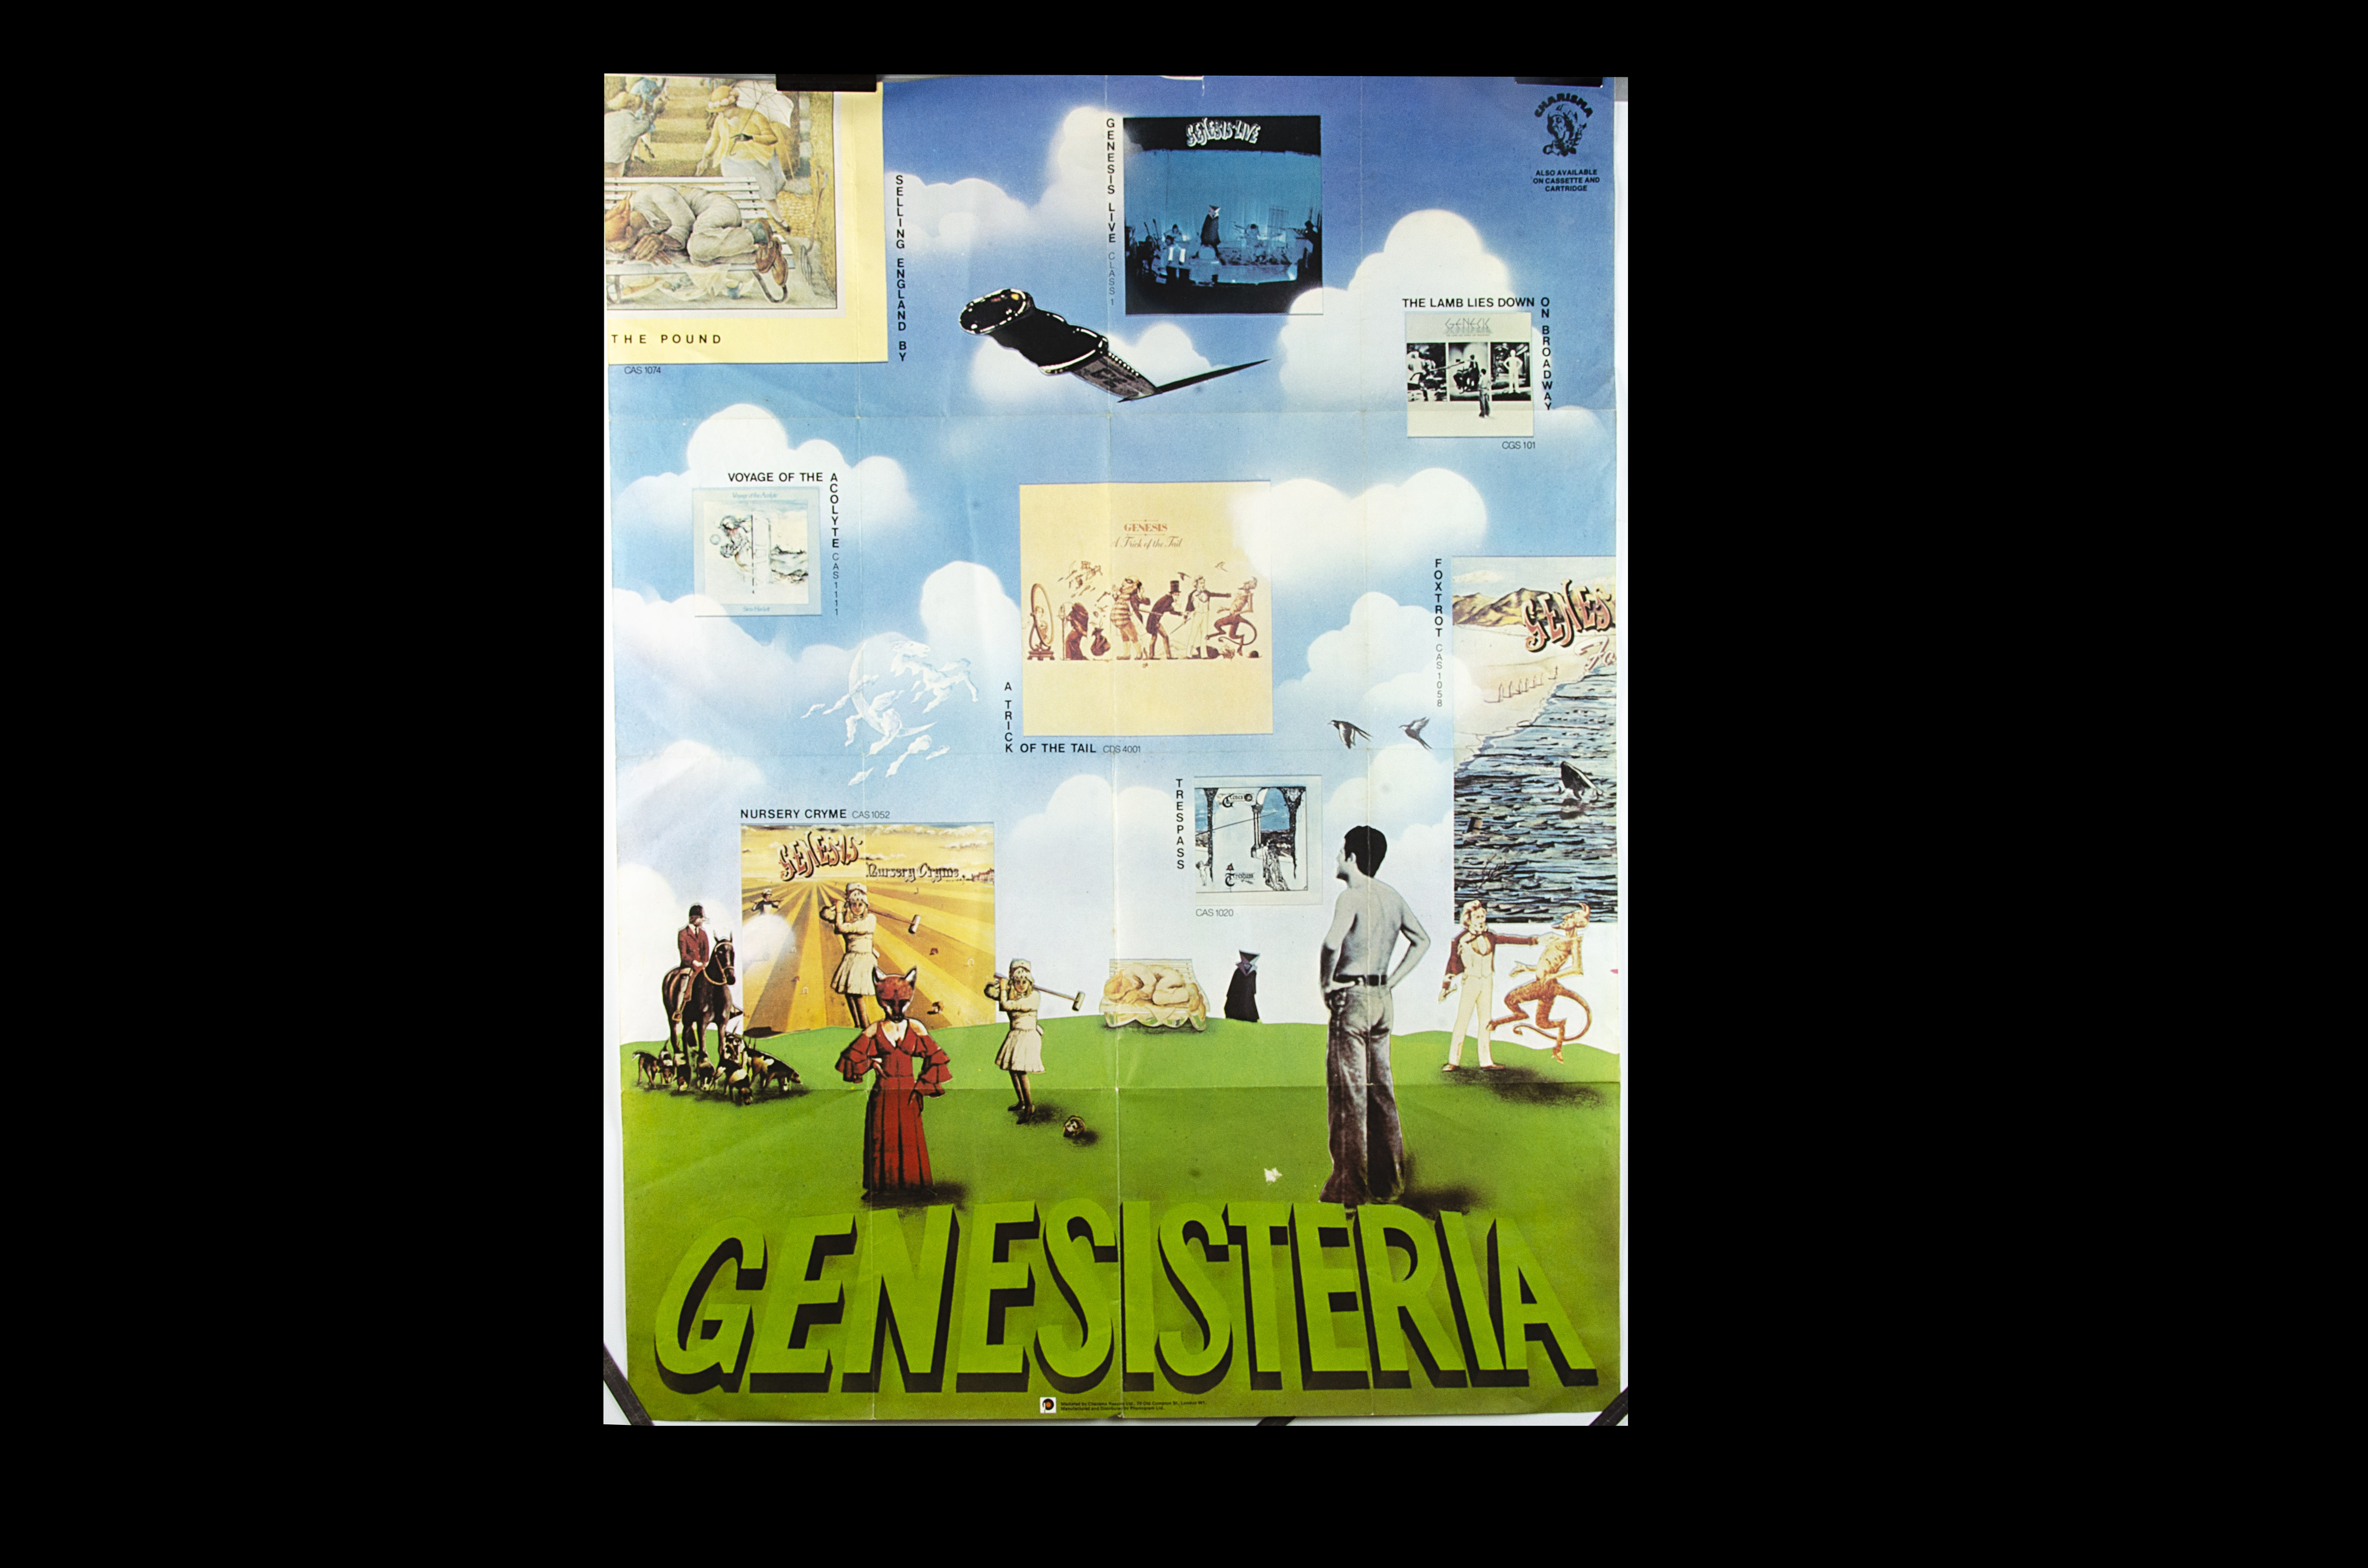 Genesis Poster, Genesisteria - Original Charisma Promotional Poster from 1975 featuring all albums